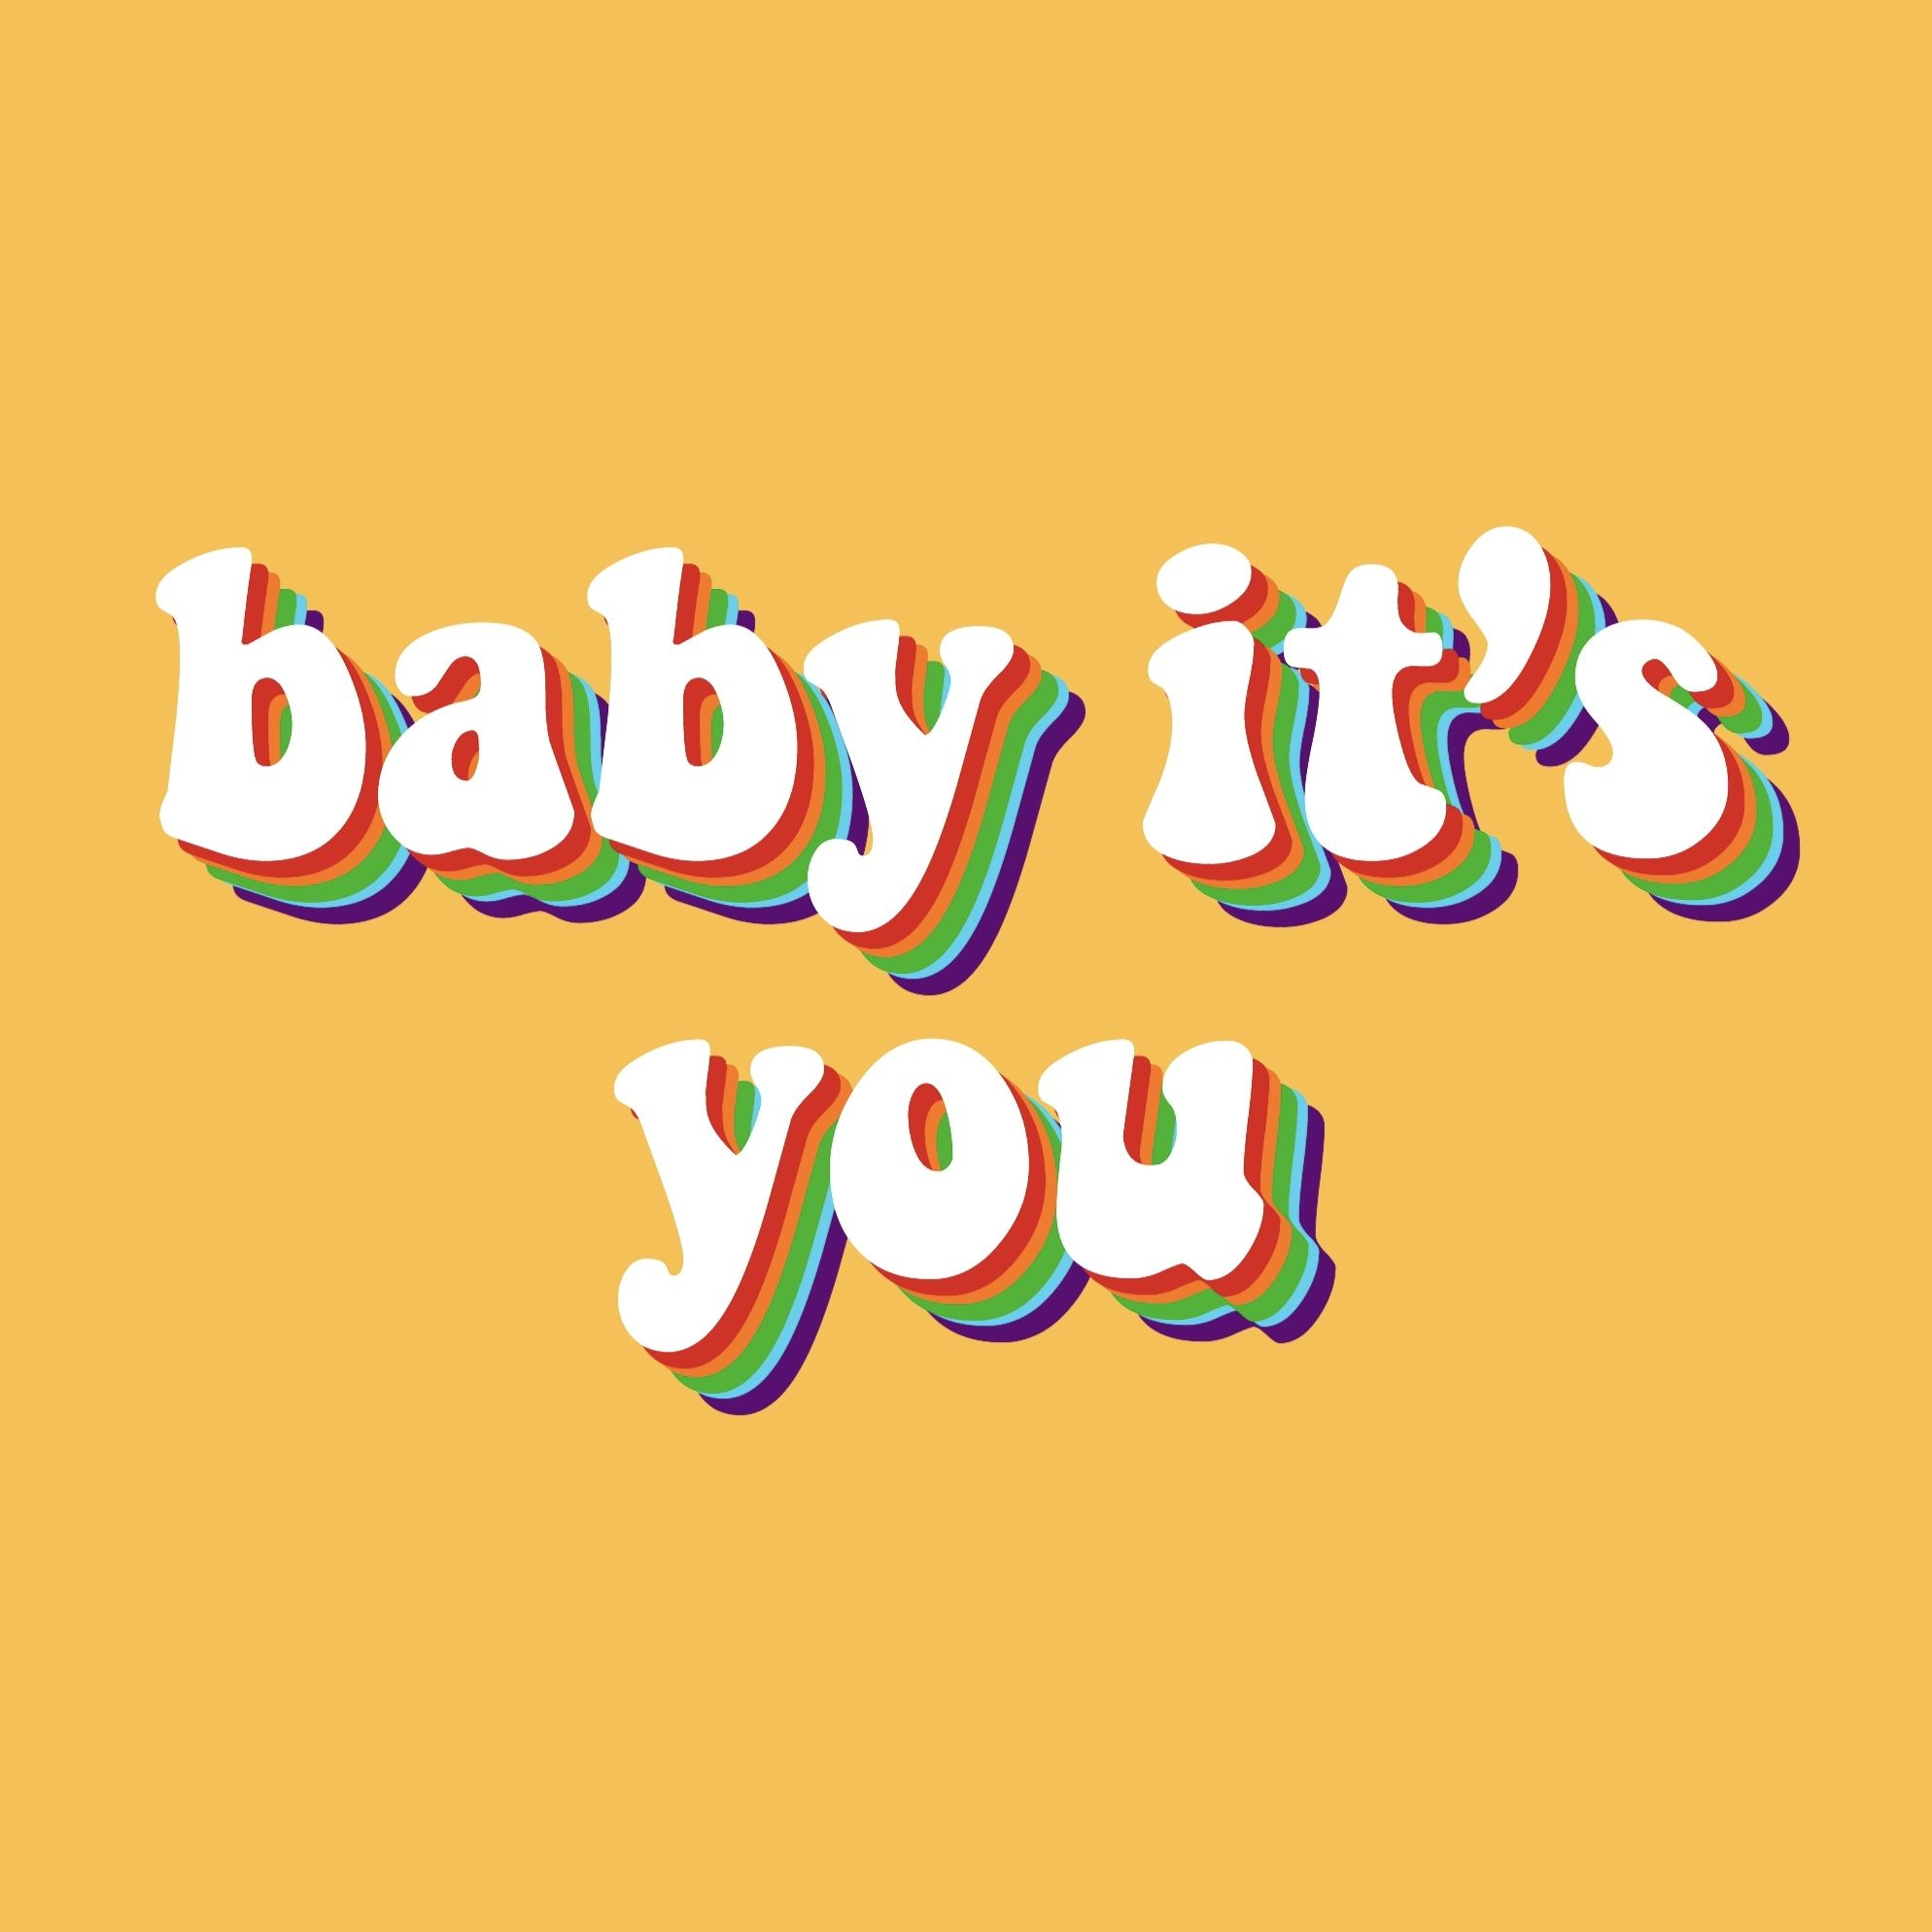 Baby Itu0027s You Quote Yellow Rainbow Retro Vintage Aesthetic Red Orange Green  Blue Purple 70s